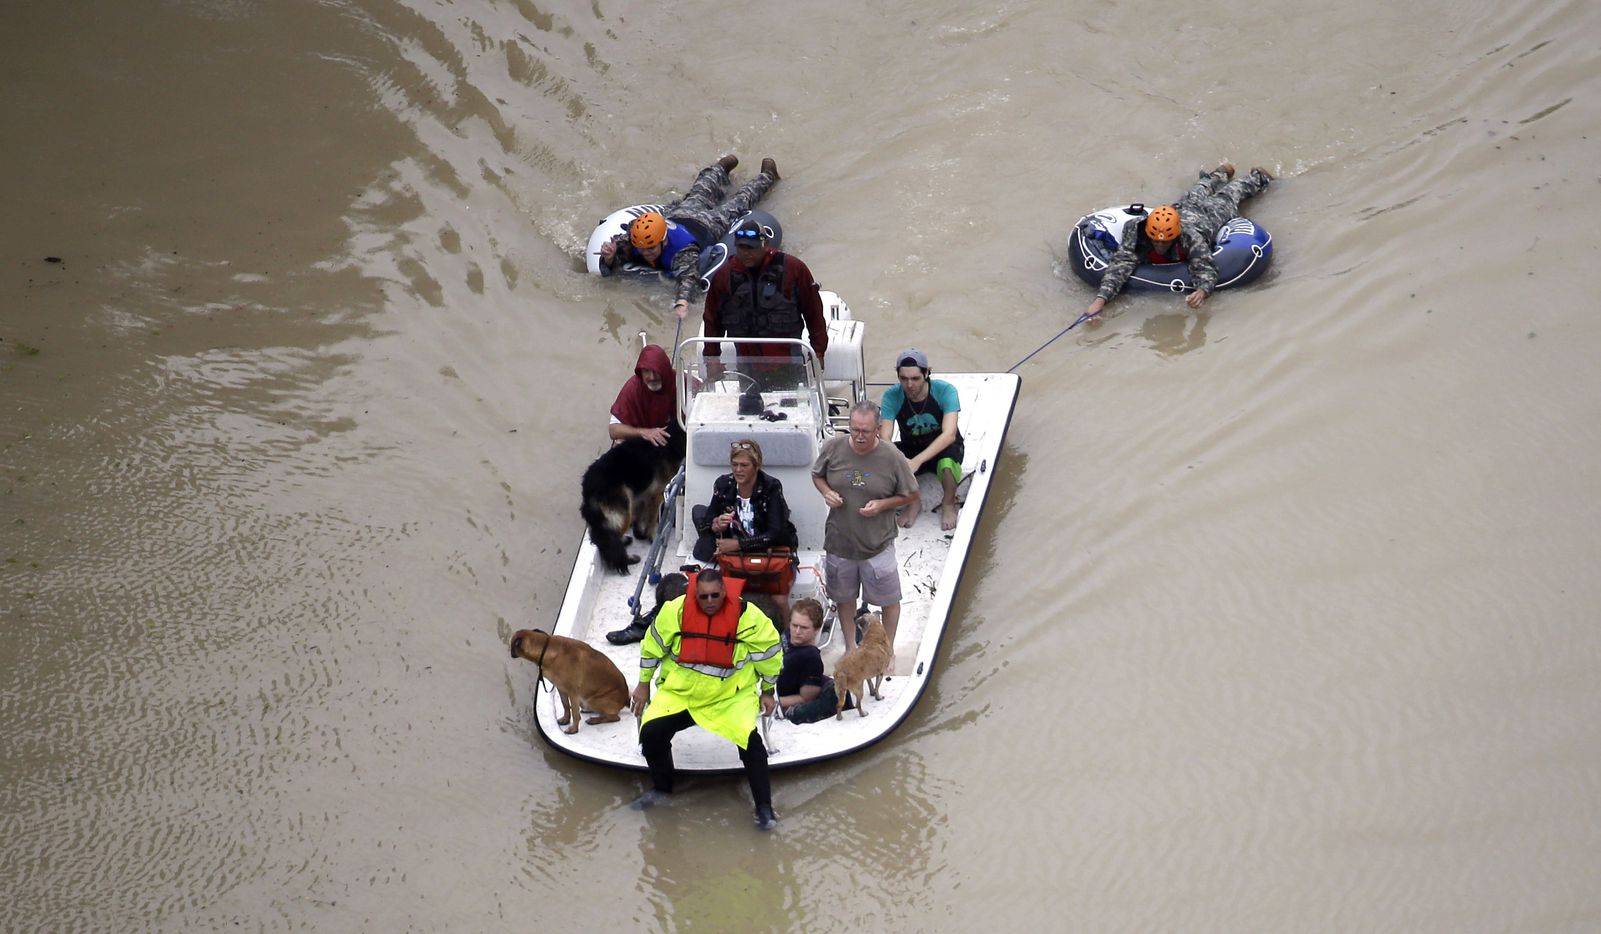 Evacuees make their way though floodwaters near the Addicks Reservoir as floodwaters from Tropical Storm Harvey rise Tuesday, Aug. 29, 2017, in Houston.